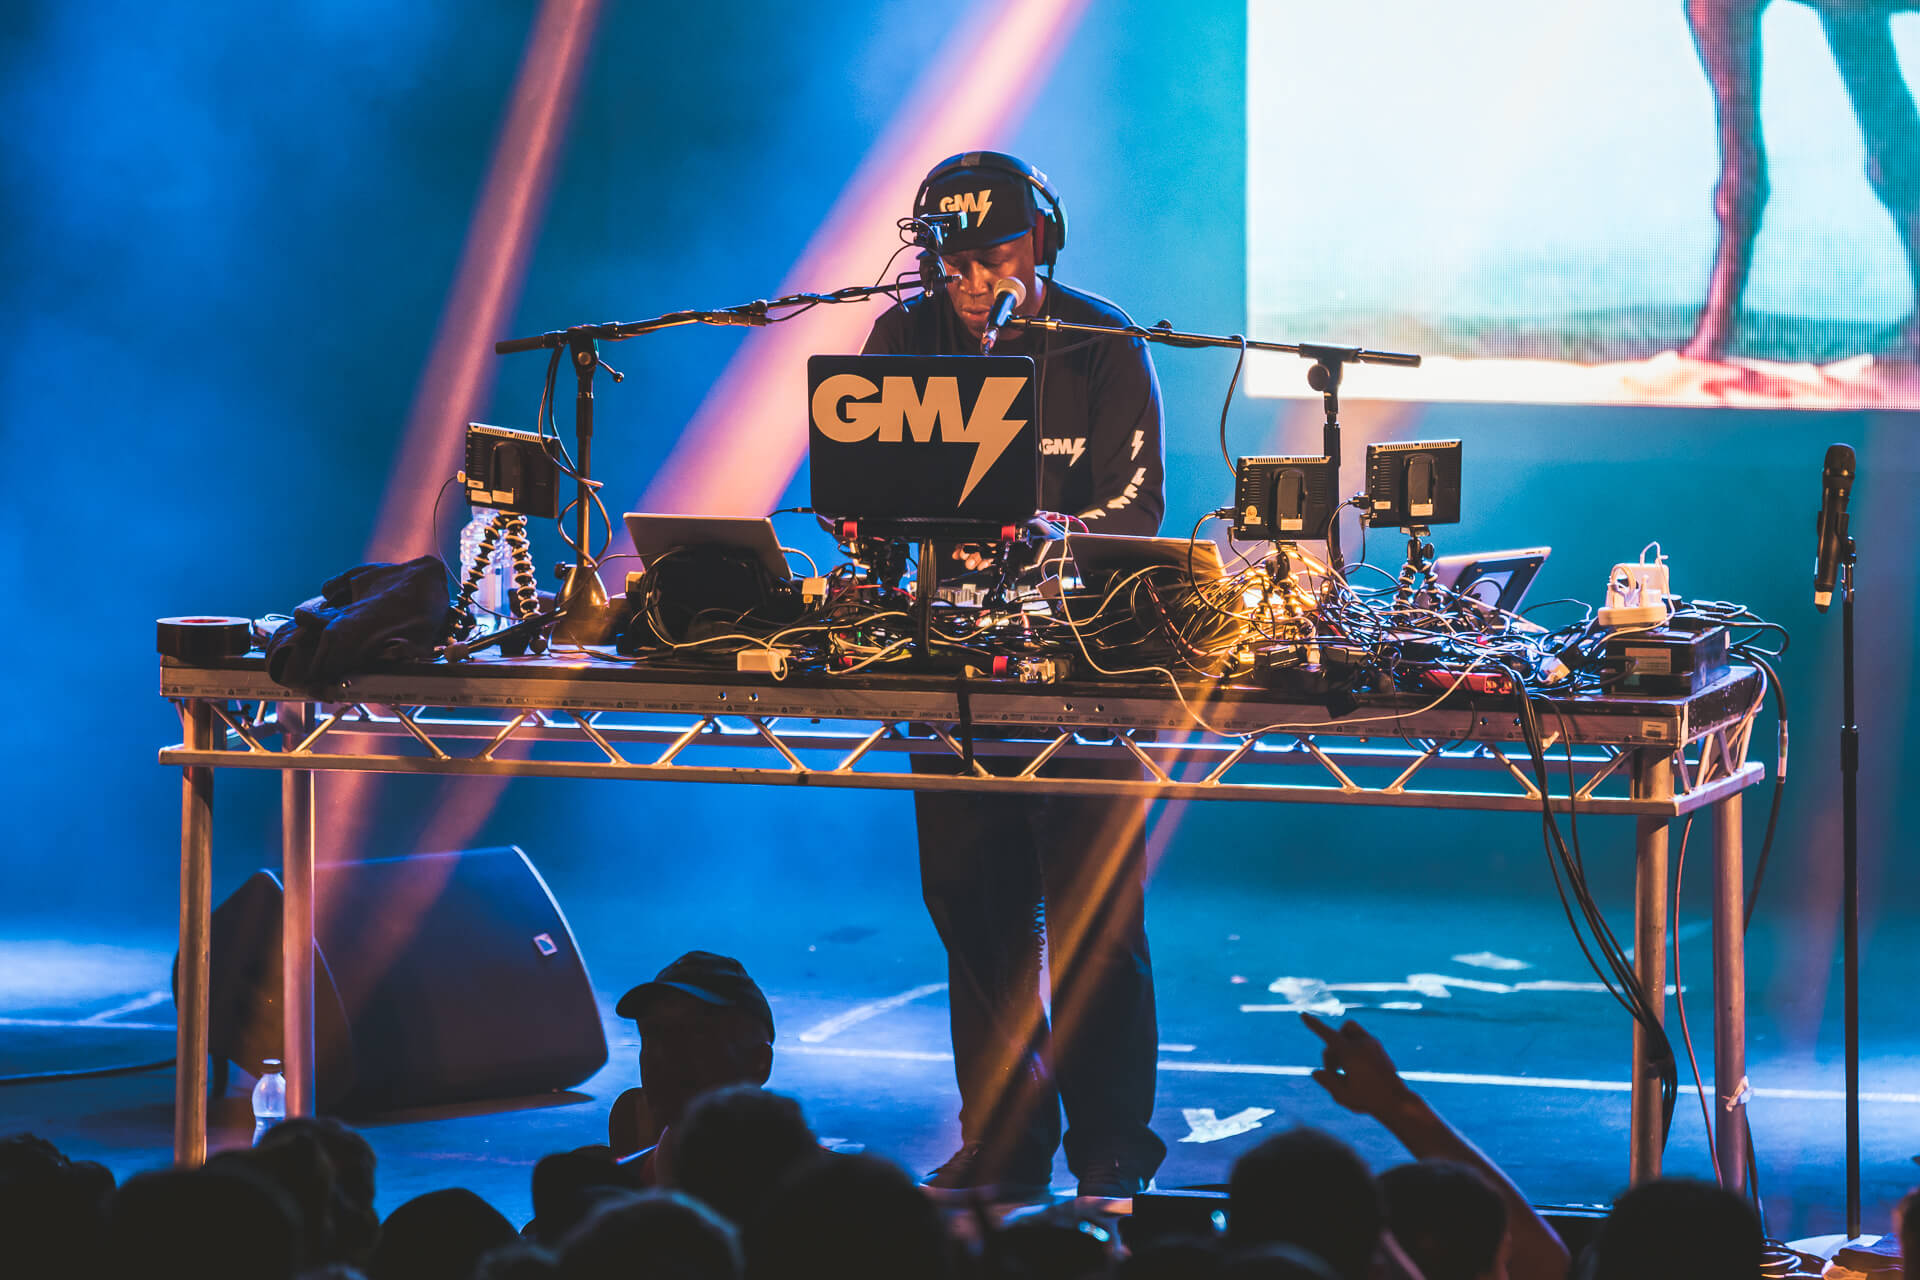 A colour image of Grand Master Flash seen here on stage at Nozstock in 2018, he is stood behind his mixing equipment as he performs for the raucous crowd.